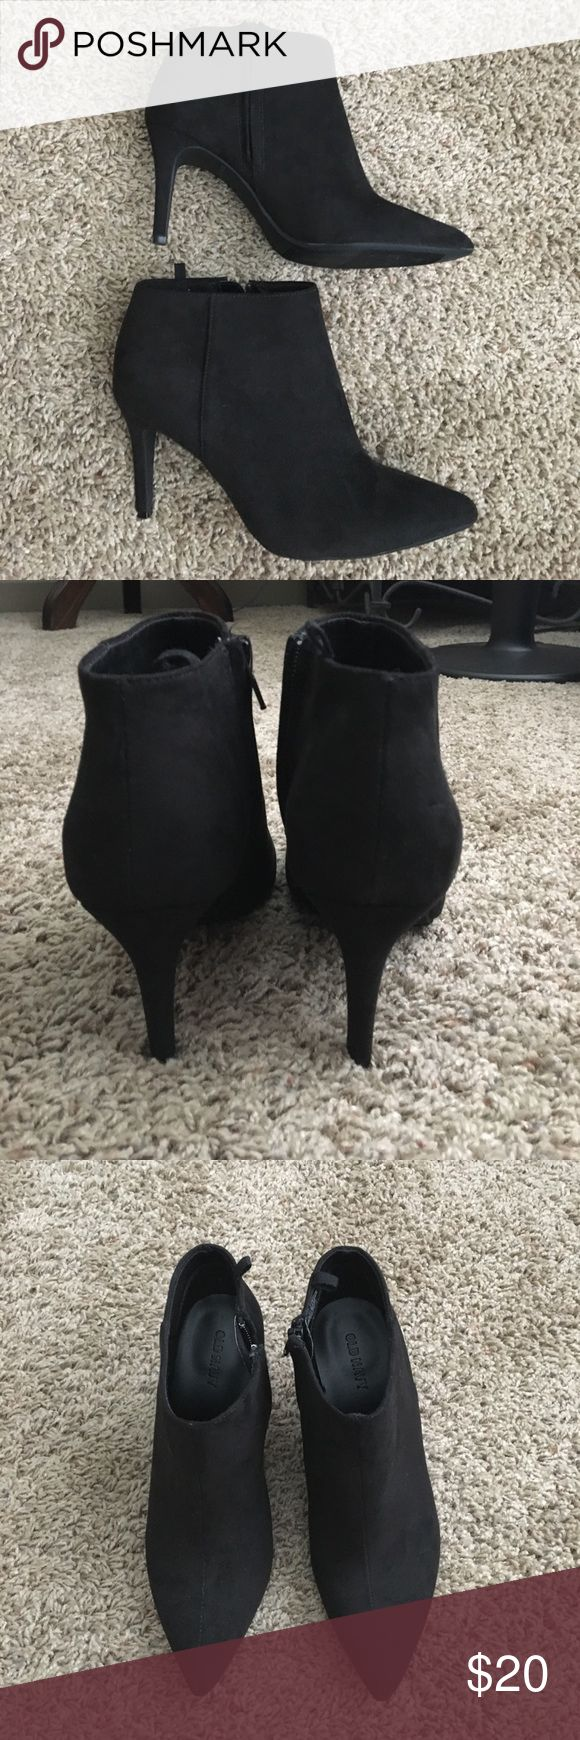 Old Navy black ankle boots size 7 Black ankle boots from Old Navy. Only worn once. 3 inch heel. SIZE 7.  Faux suede fabric Old Navy Shoes Ankle Boots & Booties